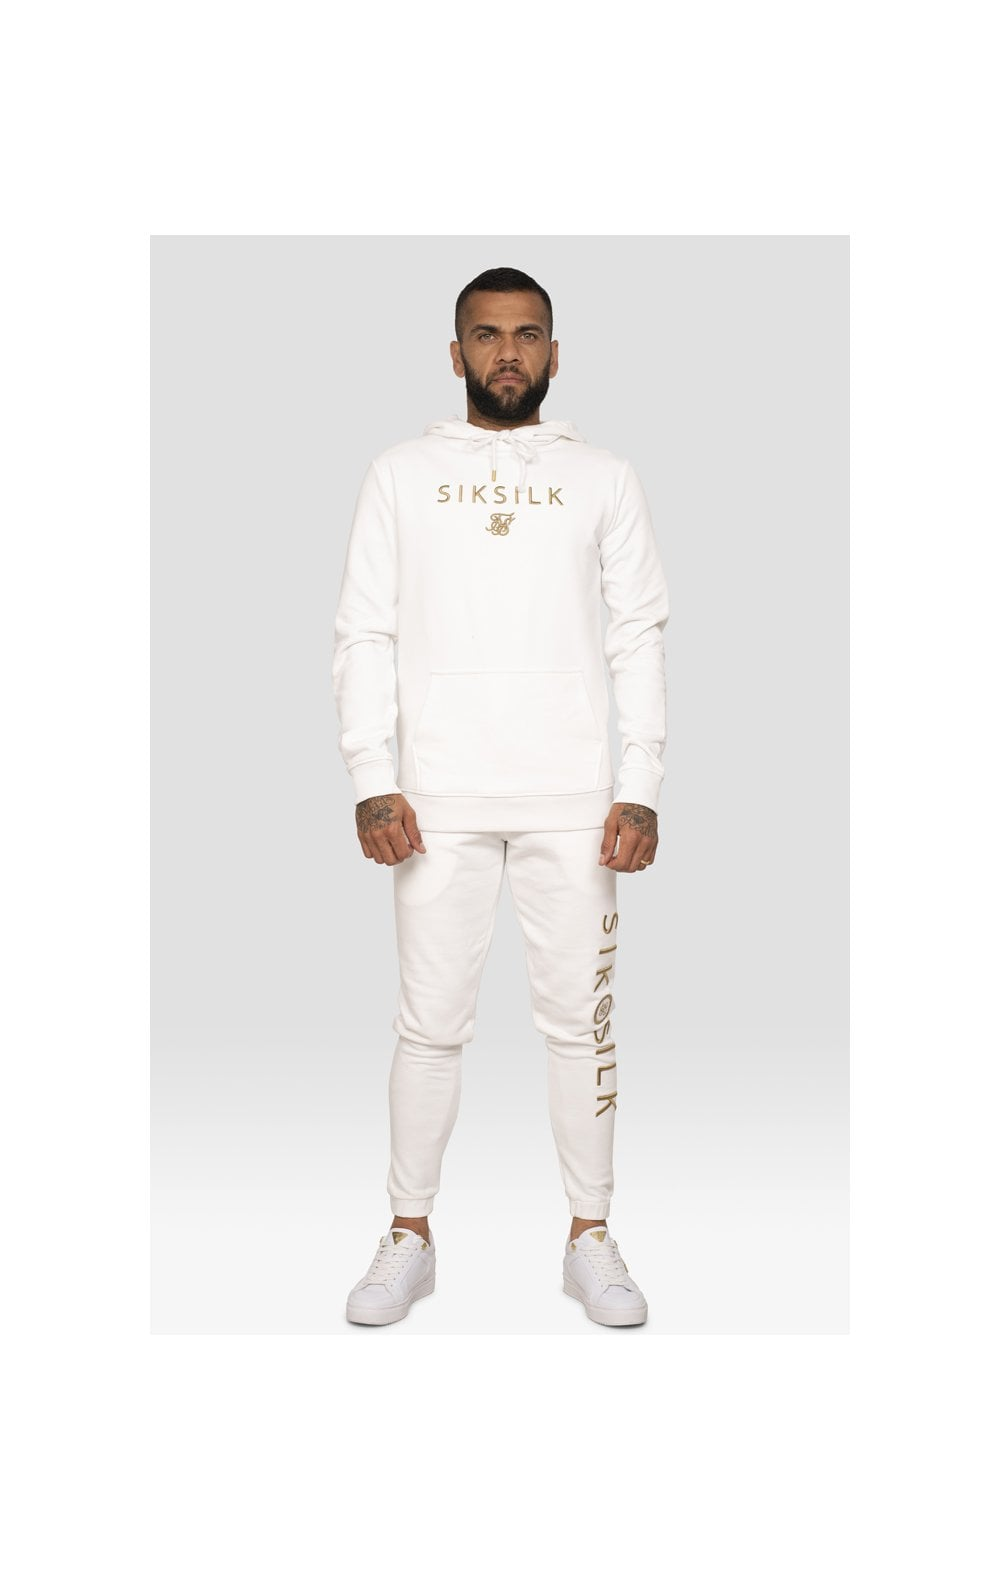 SikSilk x Dani Alves Sweat à Capuche - Blanc (6)